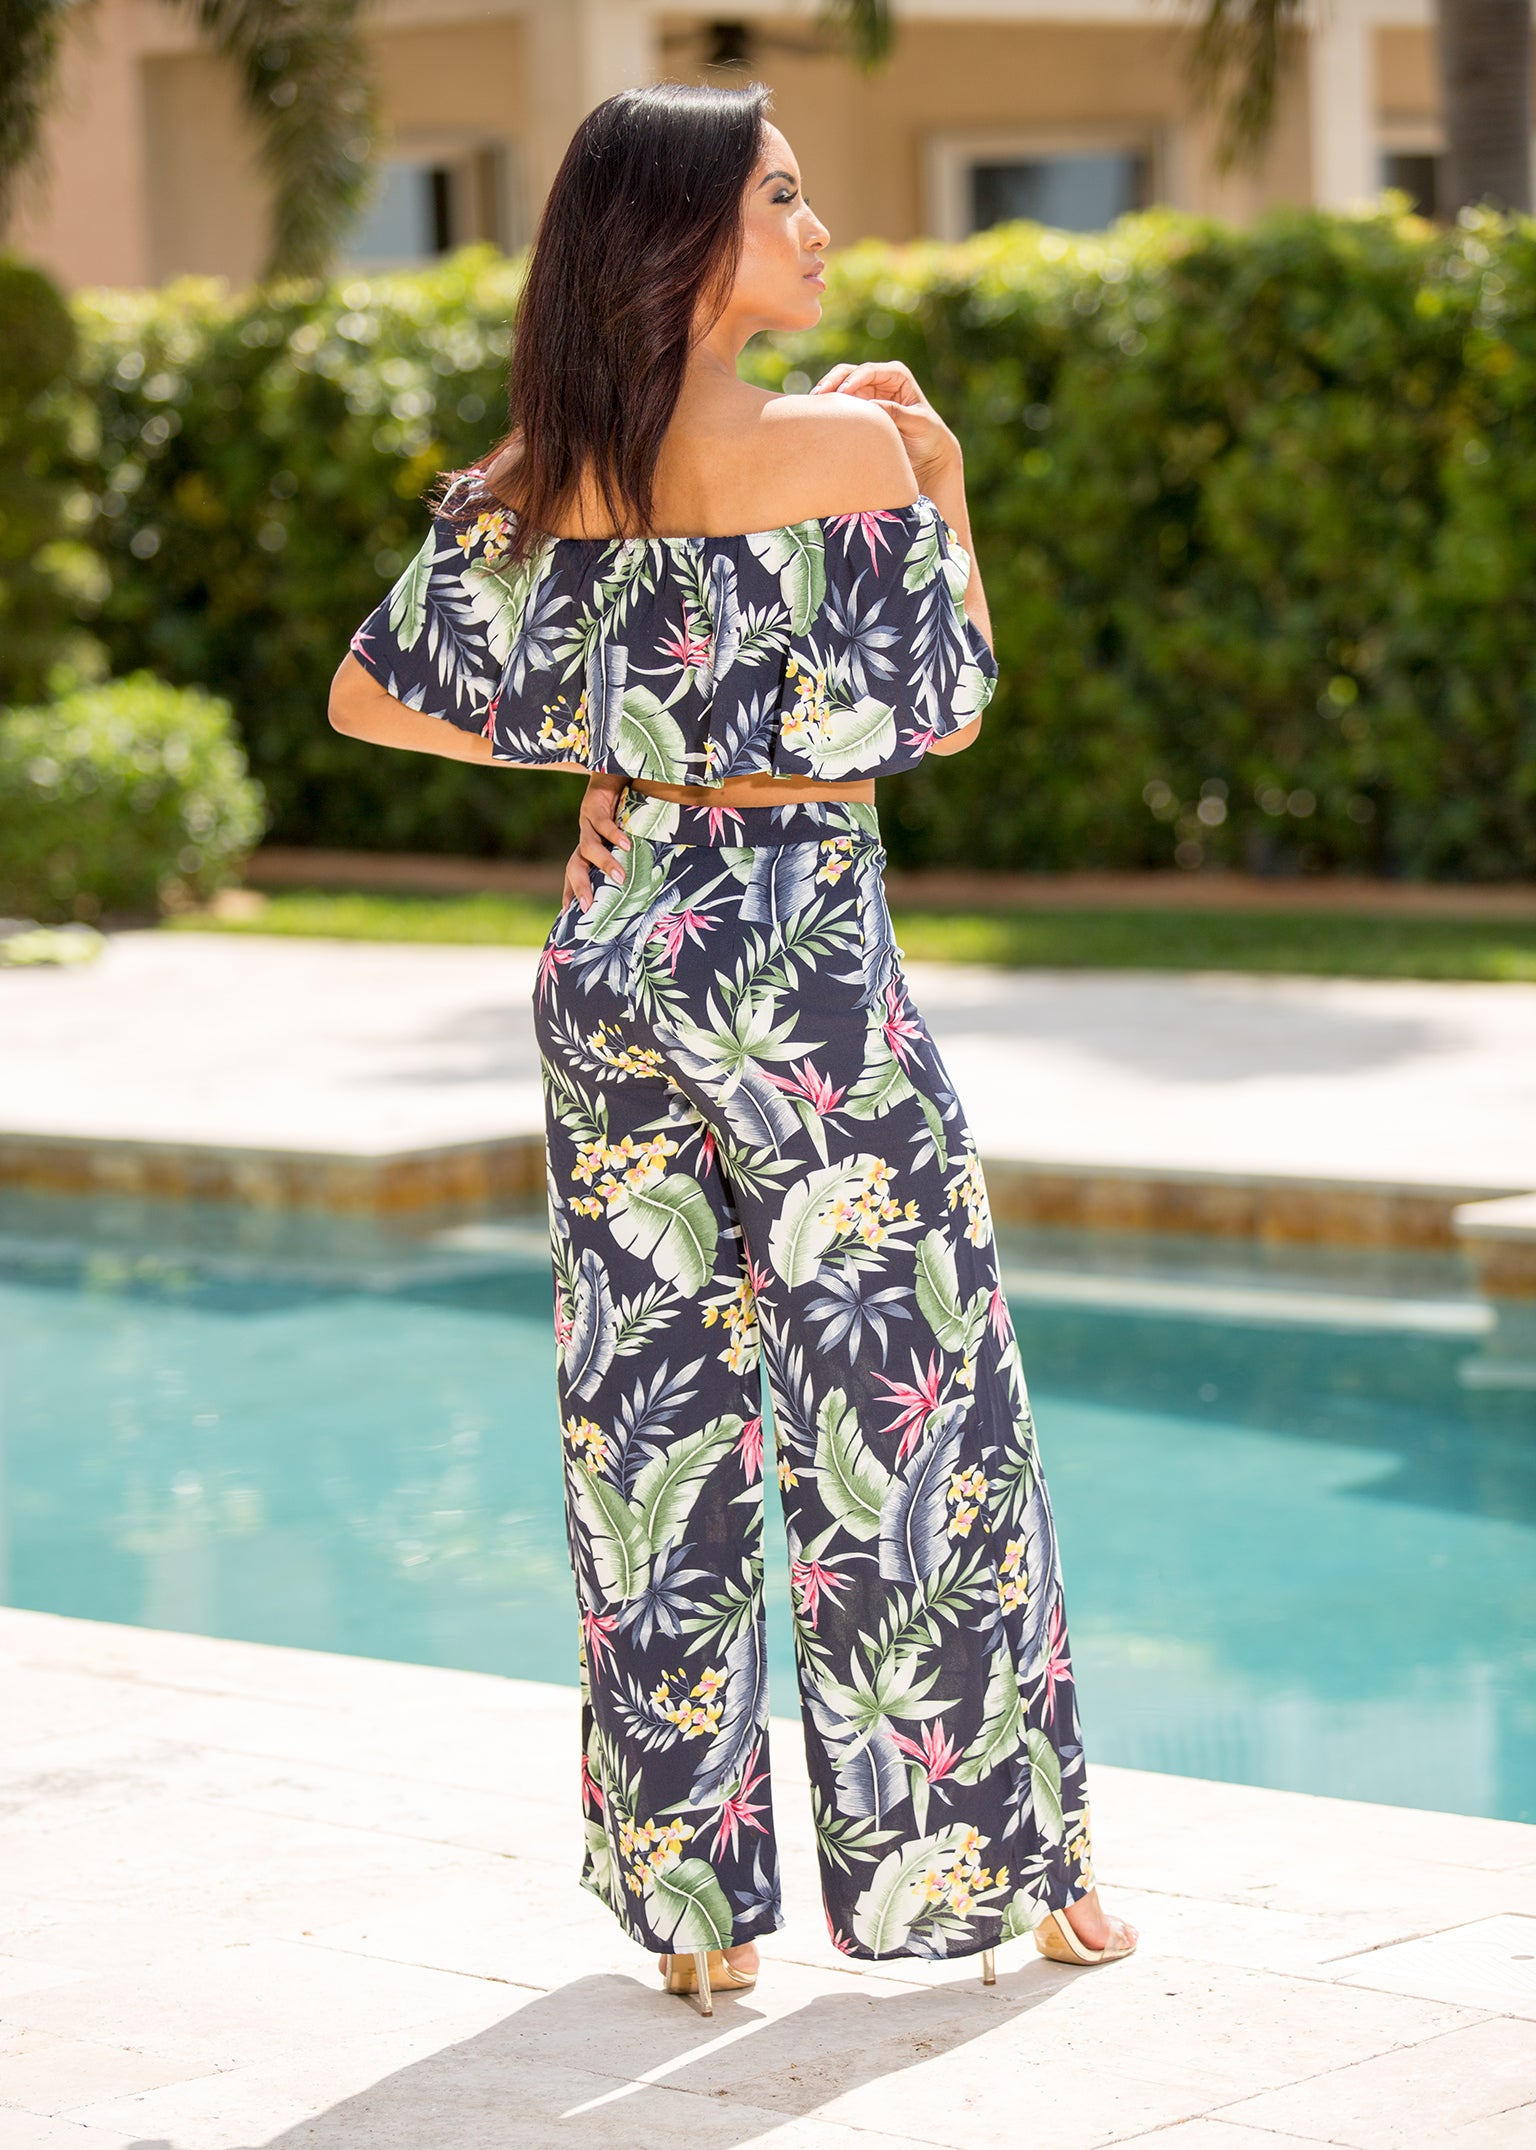 Junie - Tropical Emotions Floral Pant Set Green - Semai House Of fashion